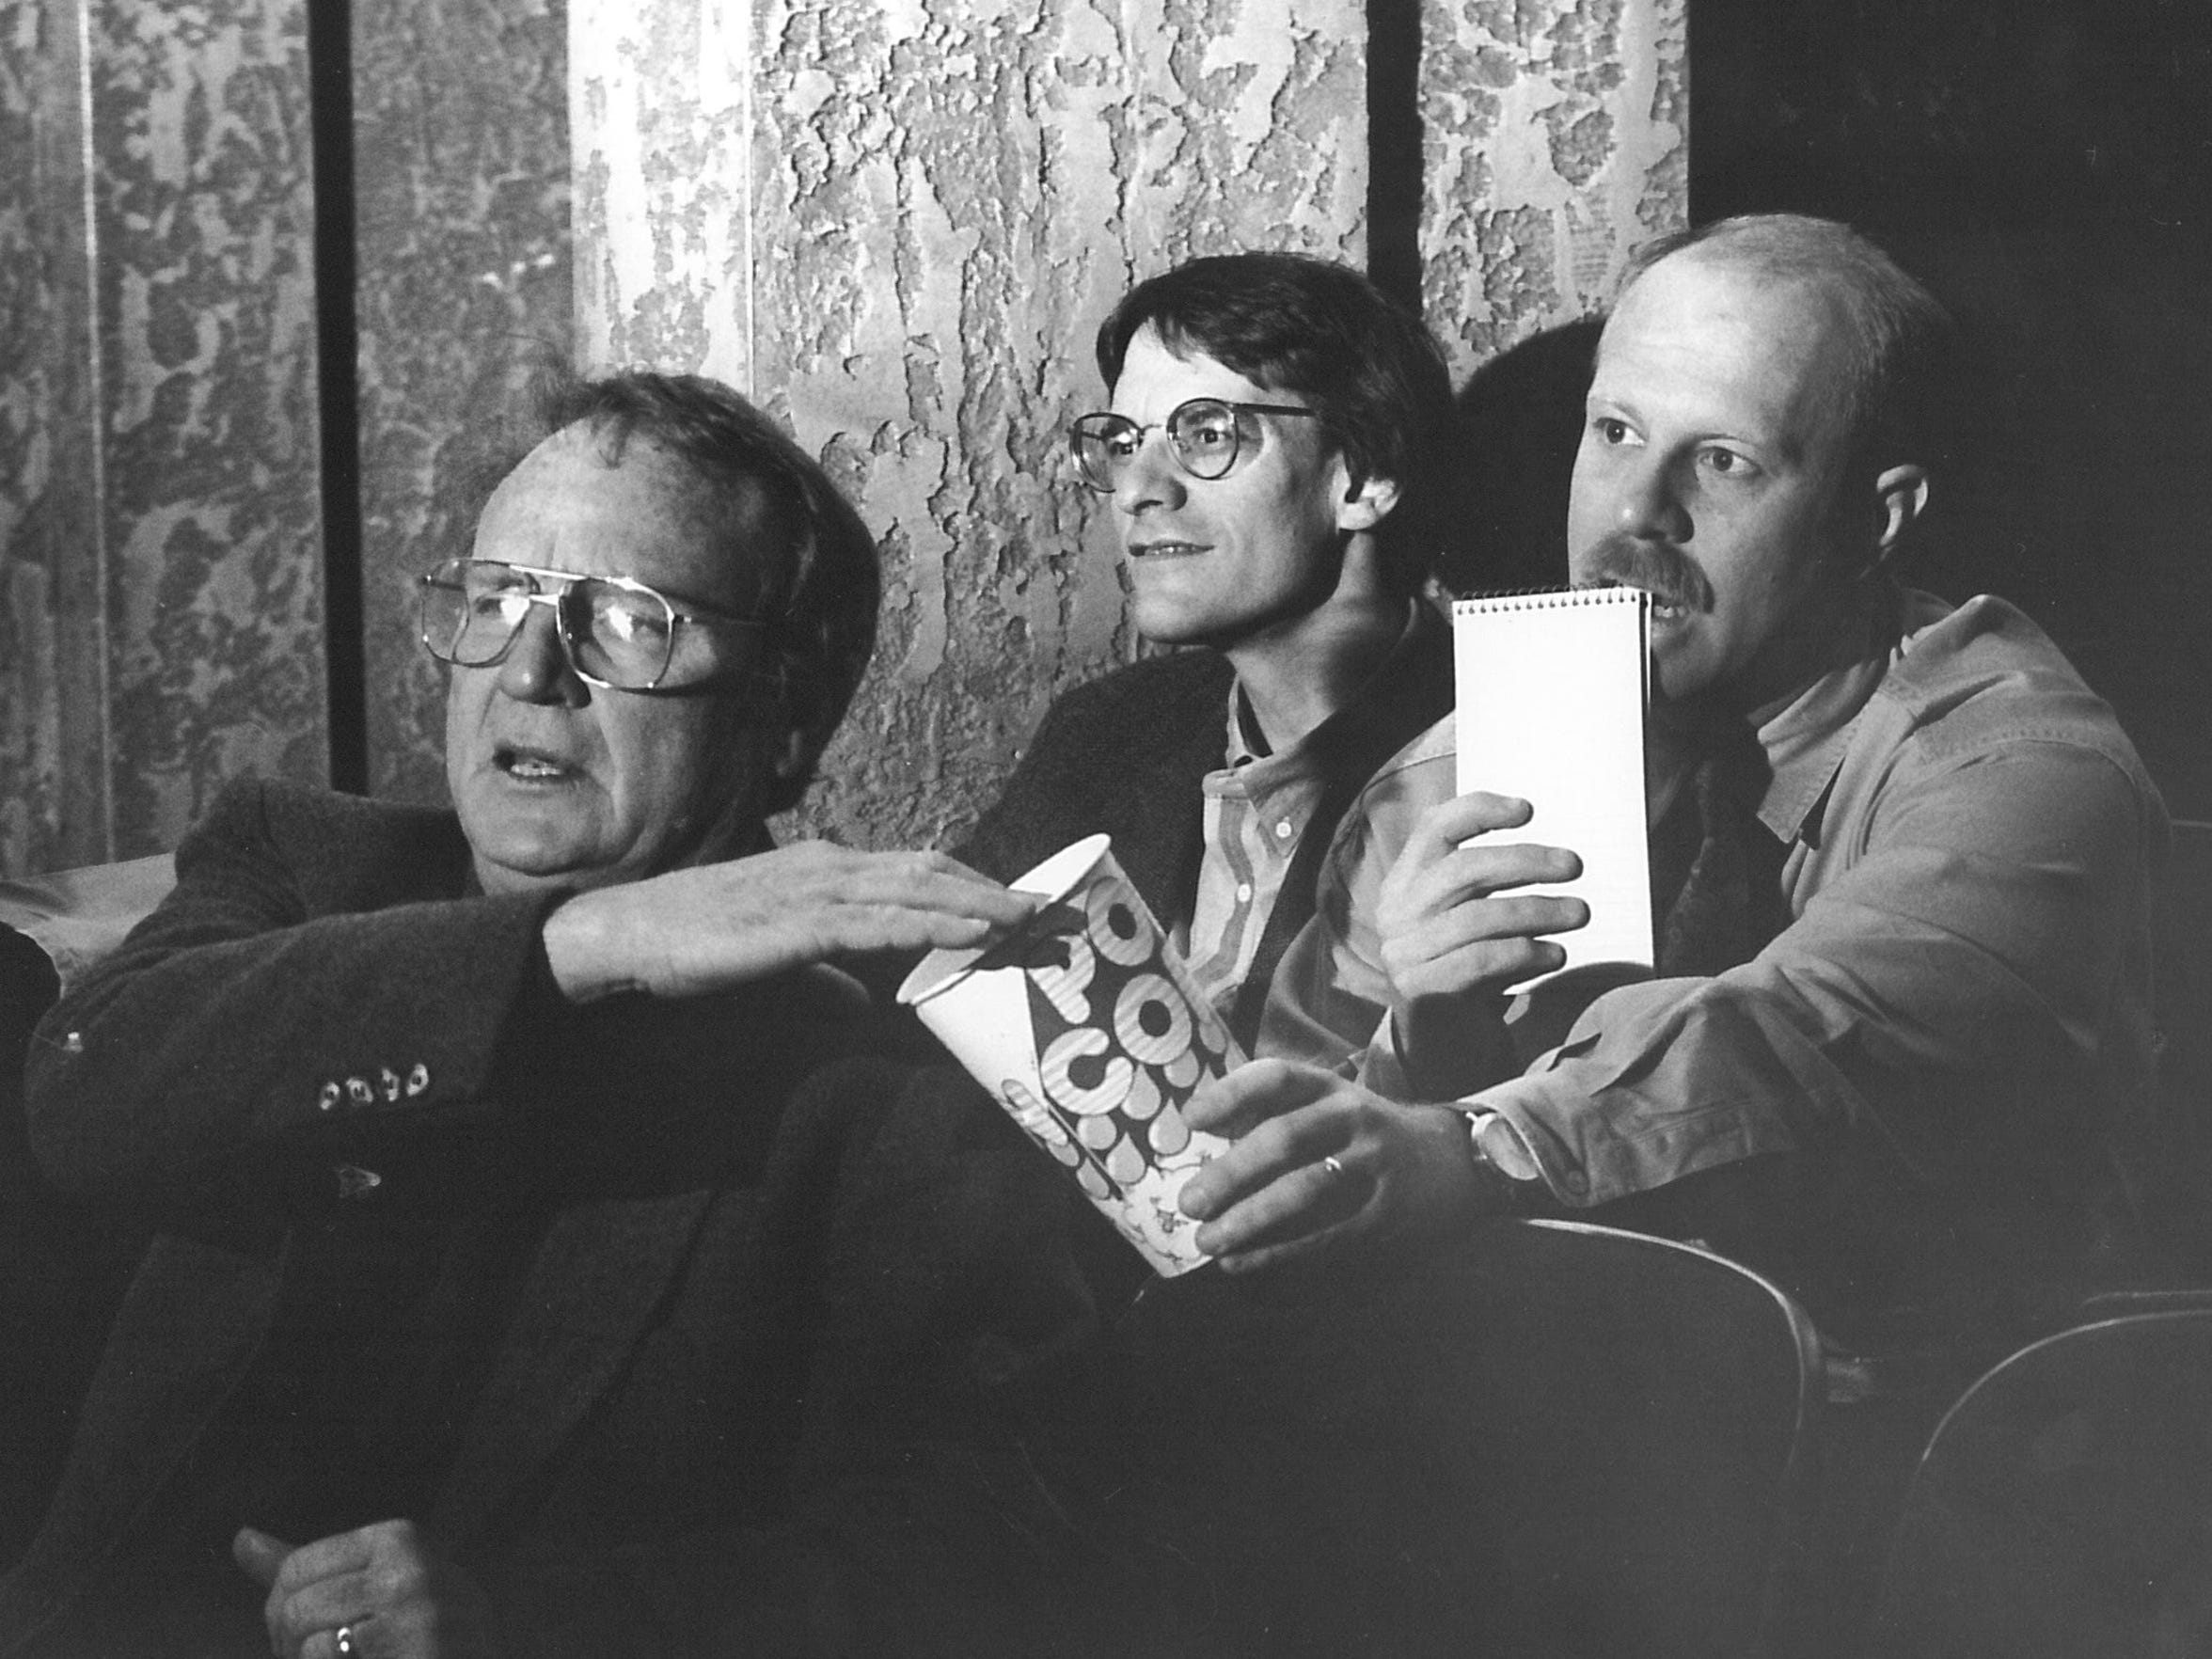 The three movie amigos, circa 1994: Bob Lapham, Richard Horn and Greg Jaklewicz reviewed films for the Reporter-News, always with popcorn near.